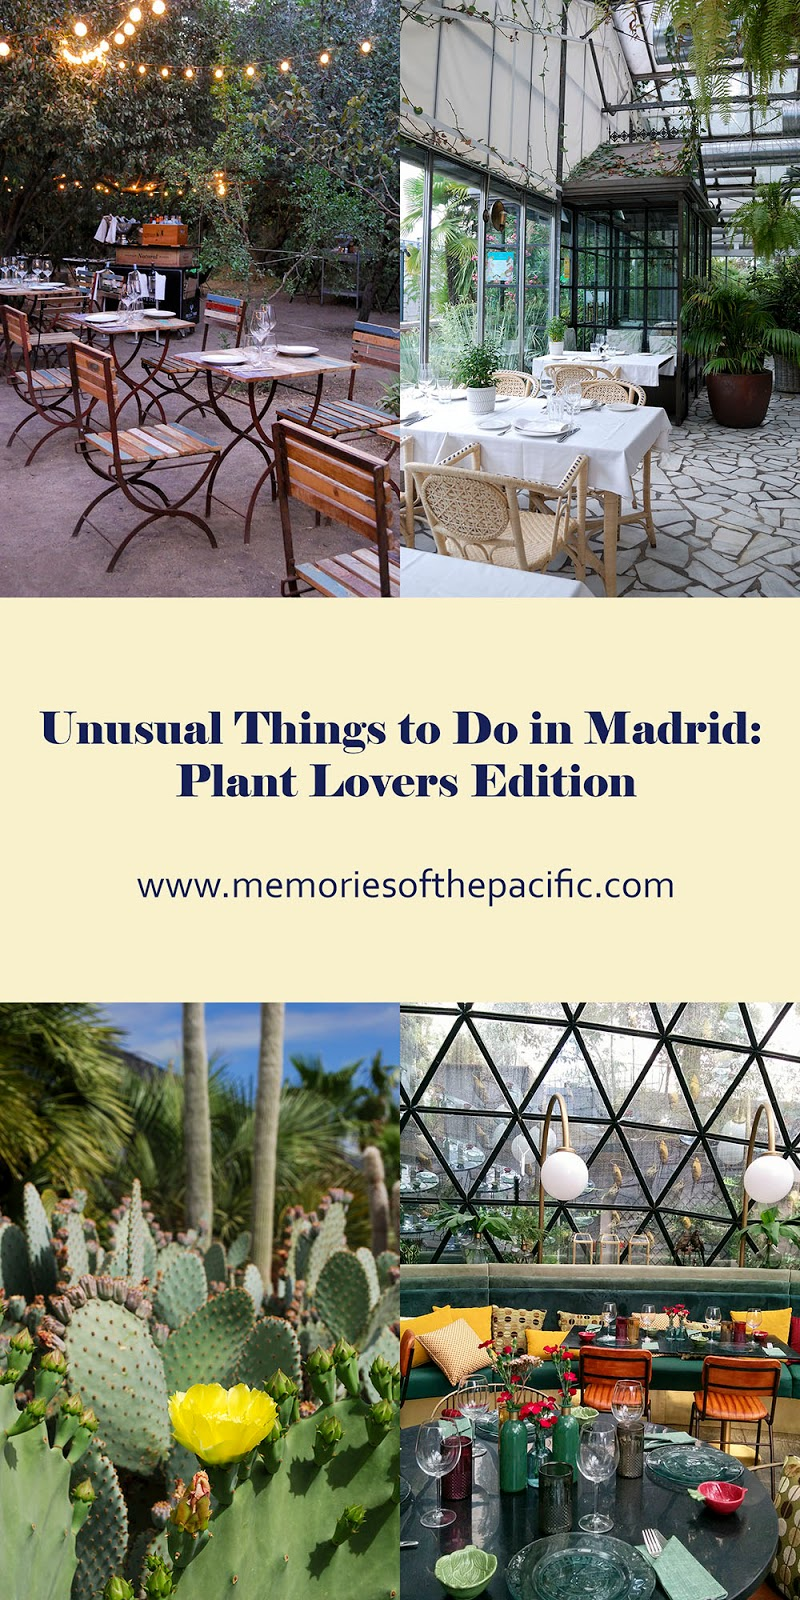 madrid plans nature plants garden events restaurants cool unusual unique